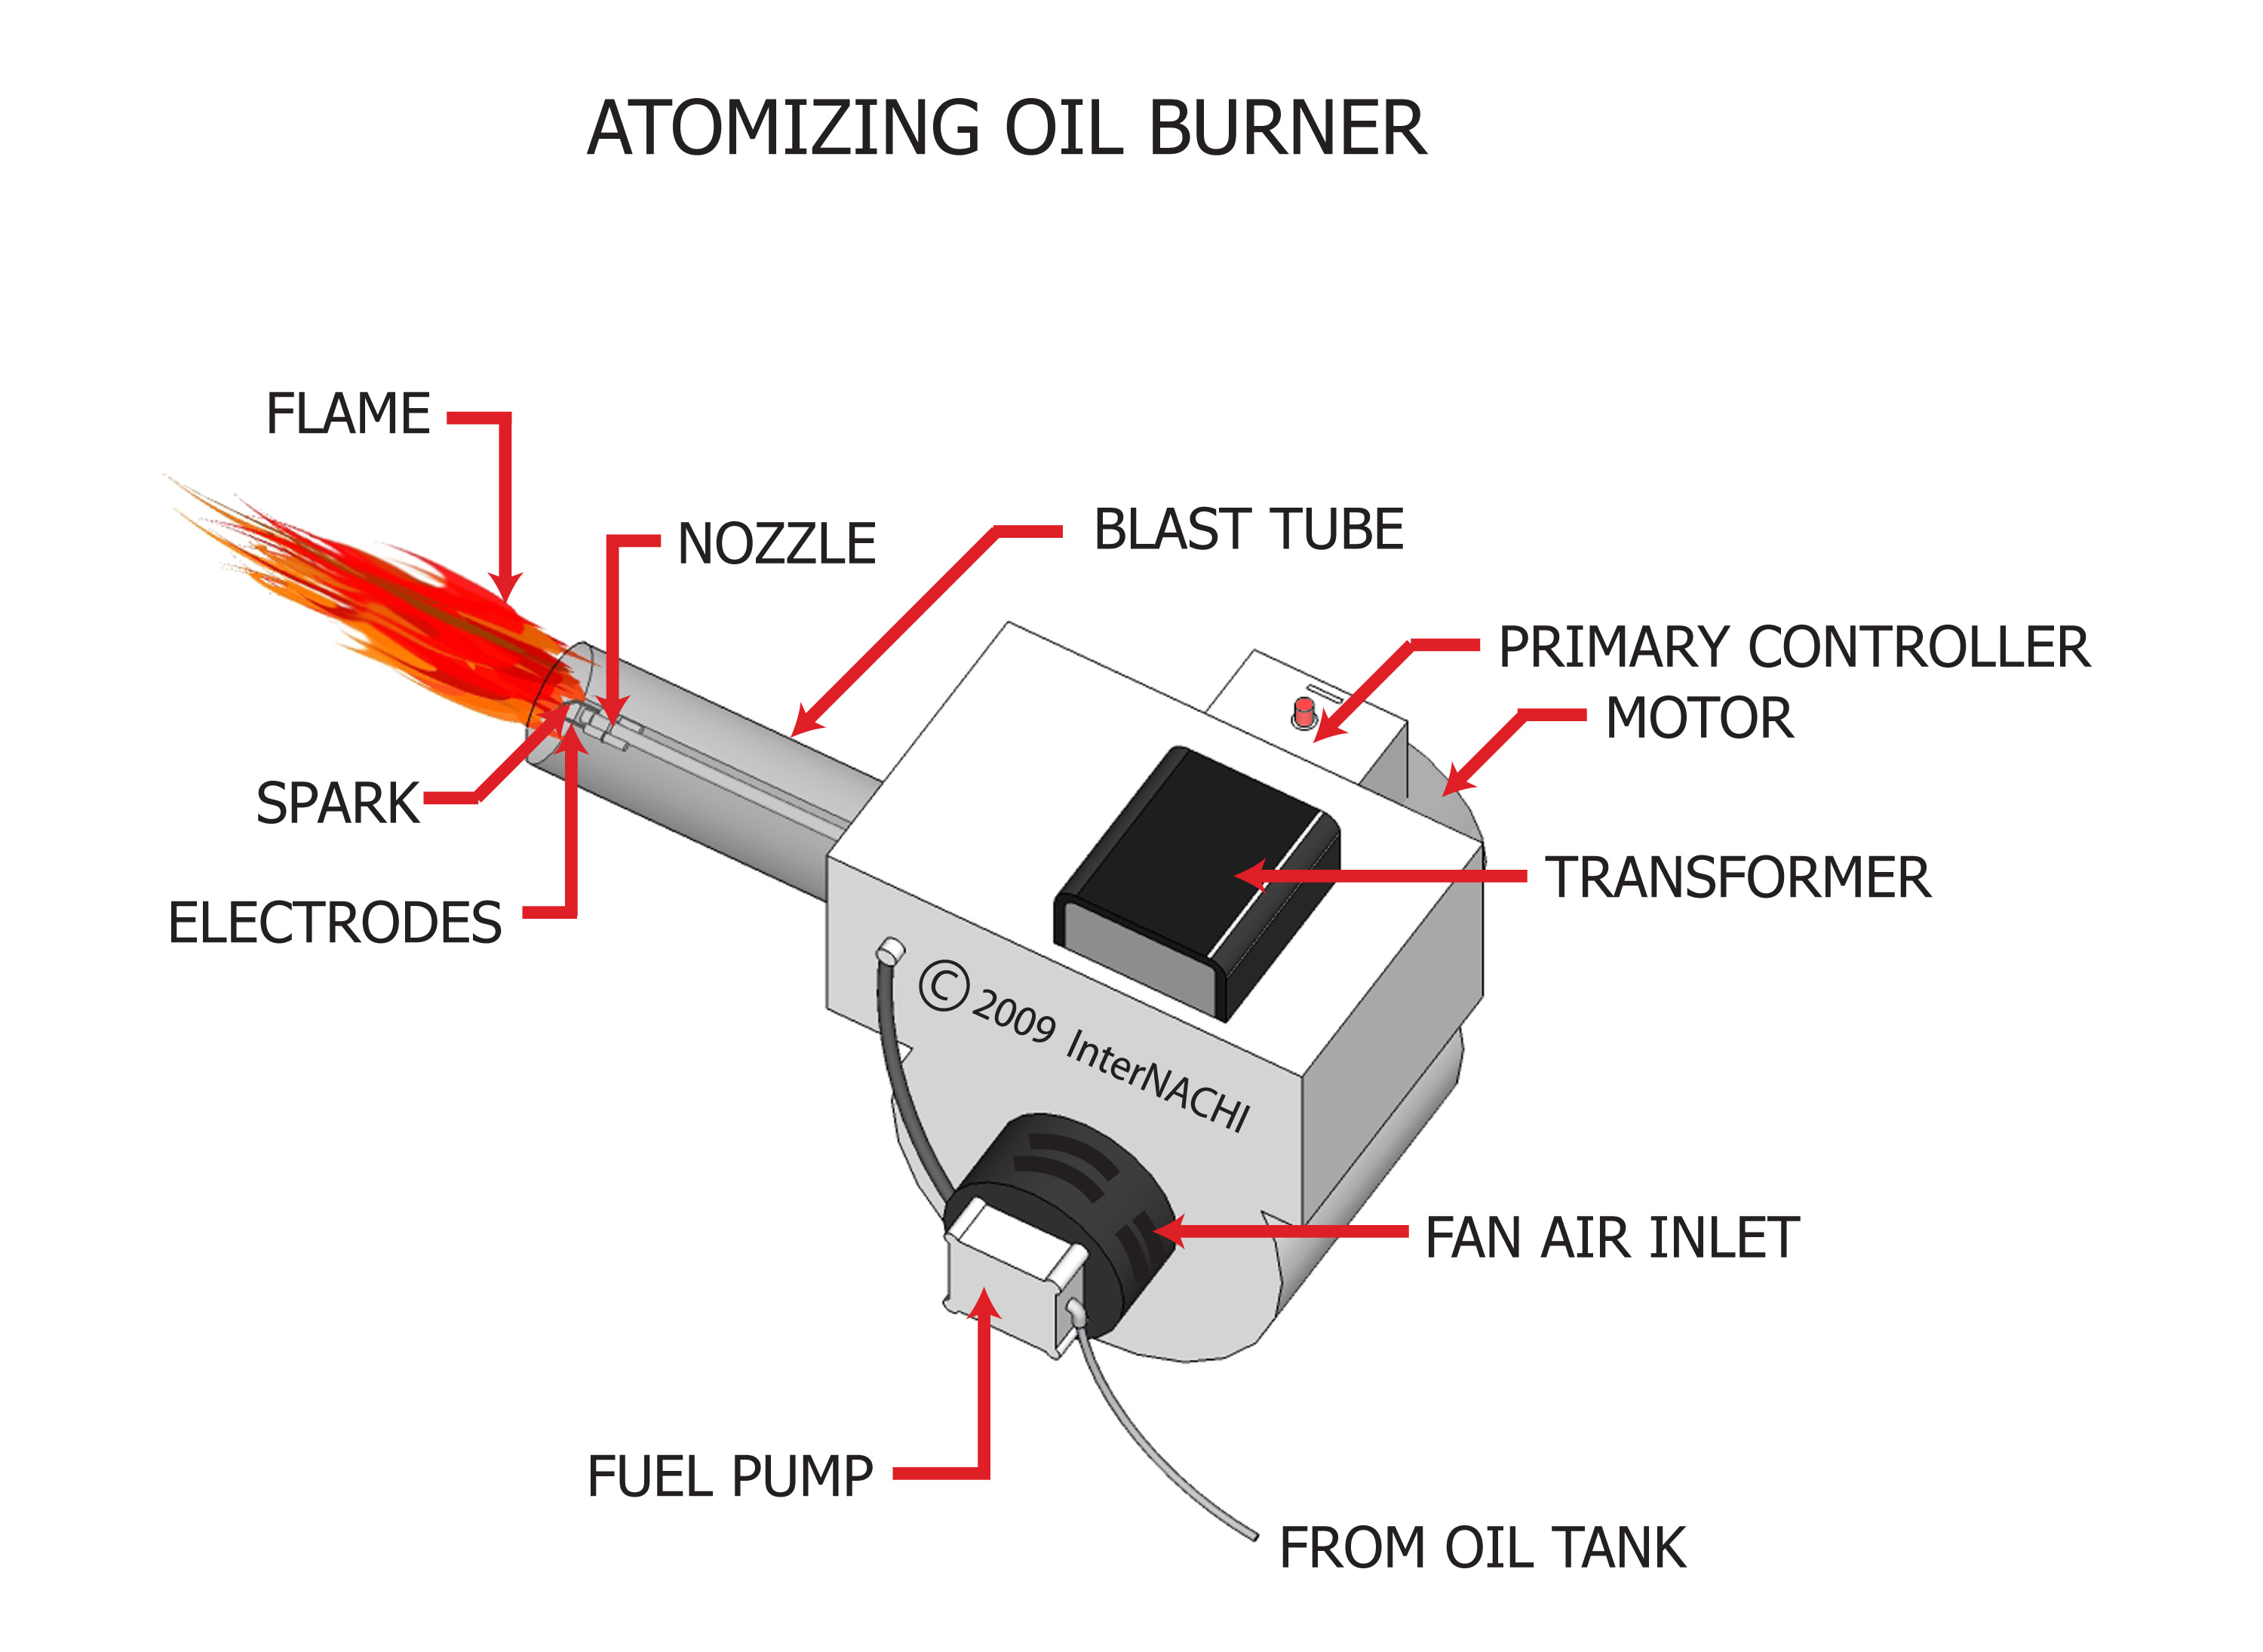 Atomizing oil burner.